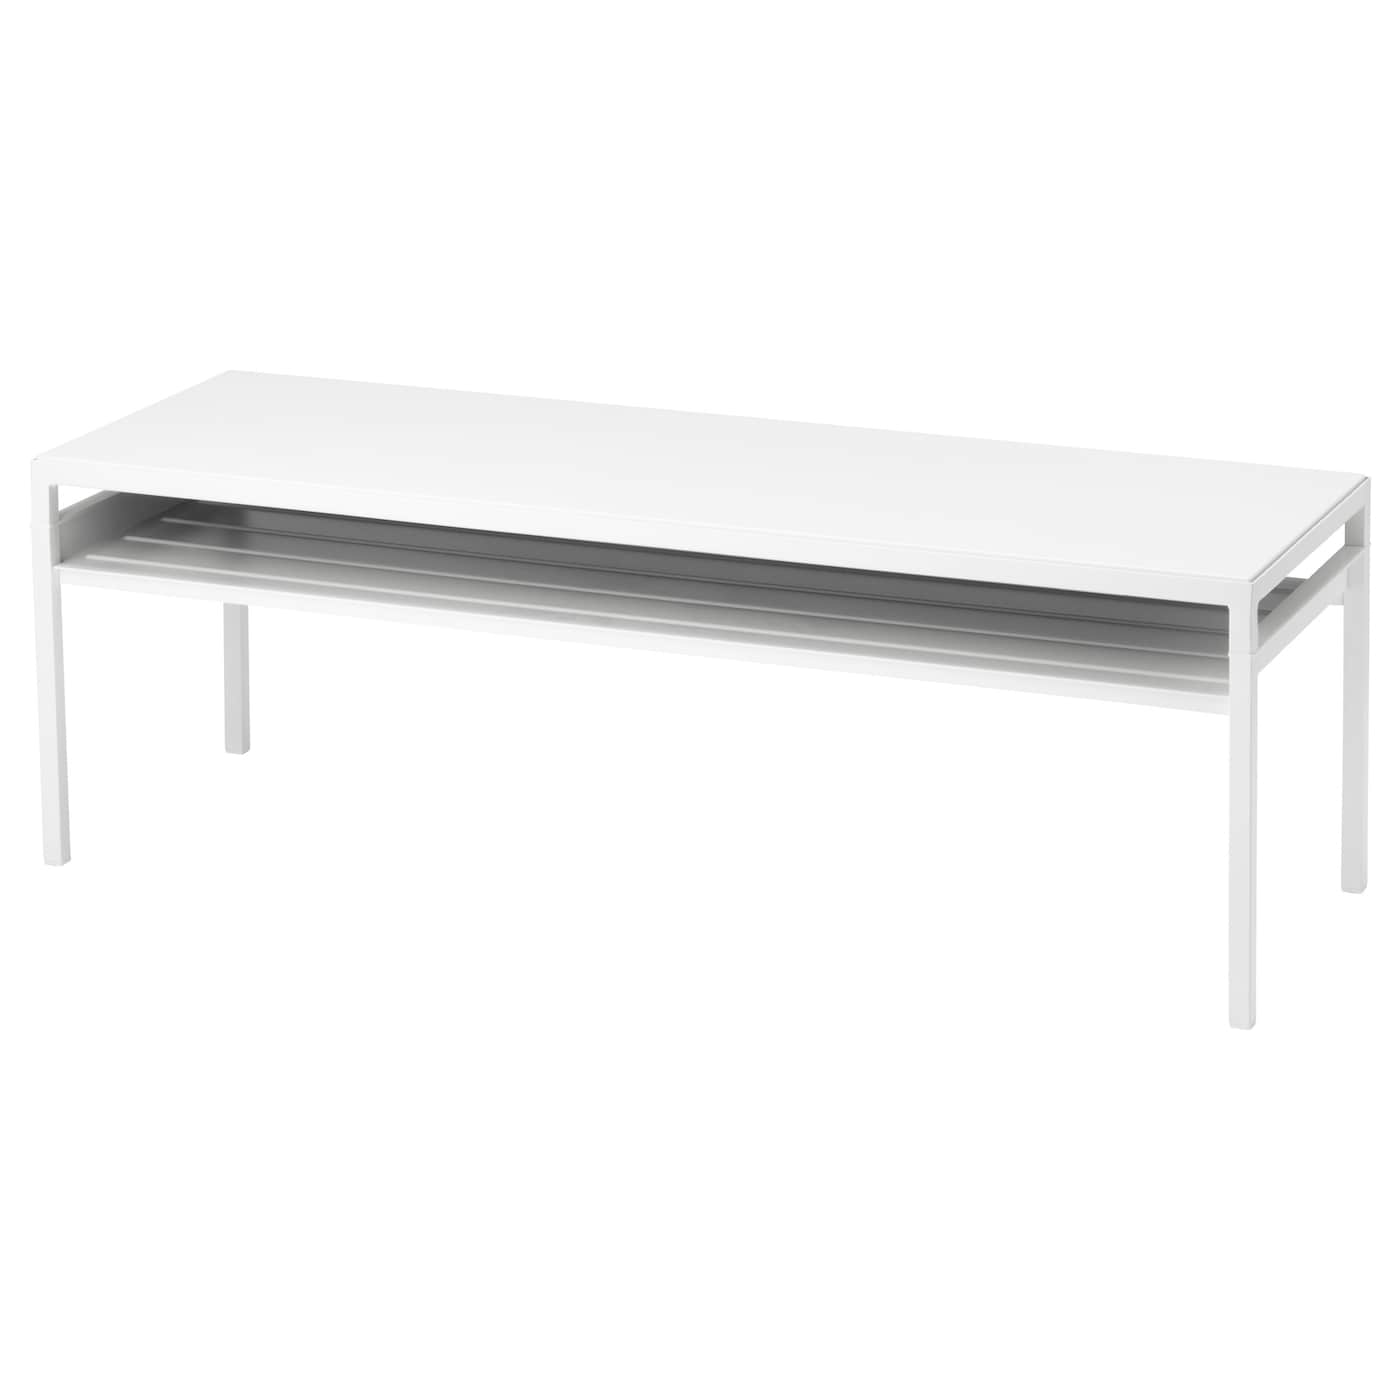 nyboda table basse avec plateau r versible blanc gris 120x40x40 cm ikea. Black Bedroom Furniture Sets. Home Design Ideas